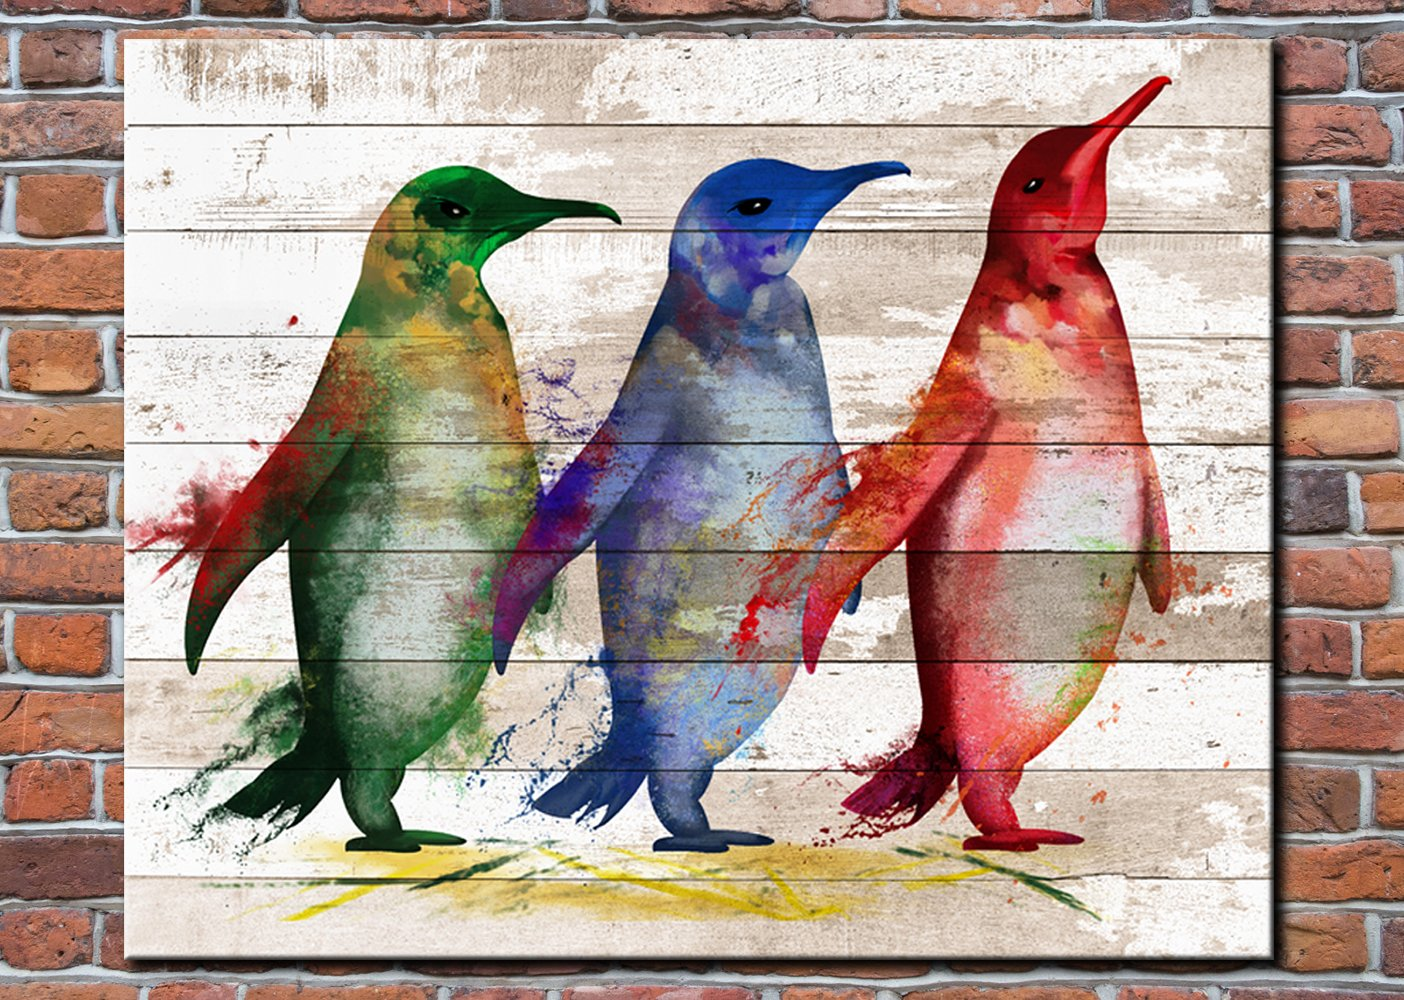 KLVOS - Colorful Abstract Animal Painting Artwork Adelie Penguin on Vintage Wood Textured Background Rustic Country Style Home Decor Giclee Print Frame Wall Art for Bedroom Ready to Hang 16''x20''